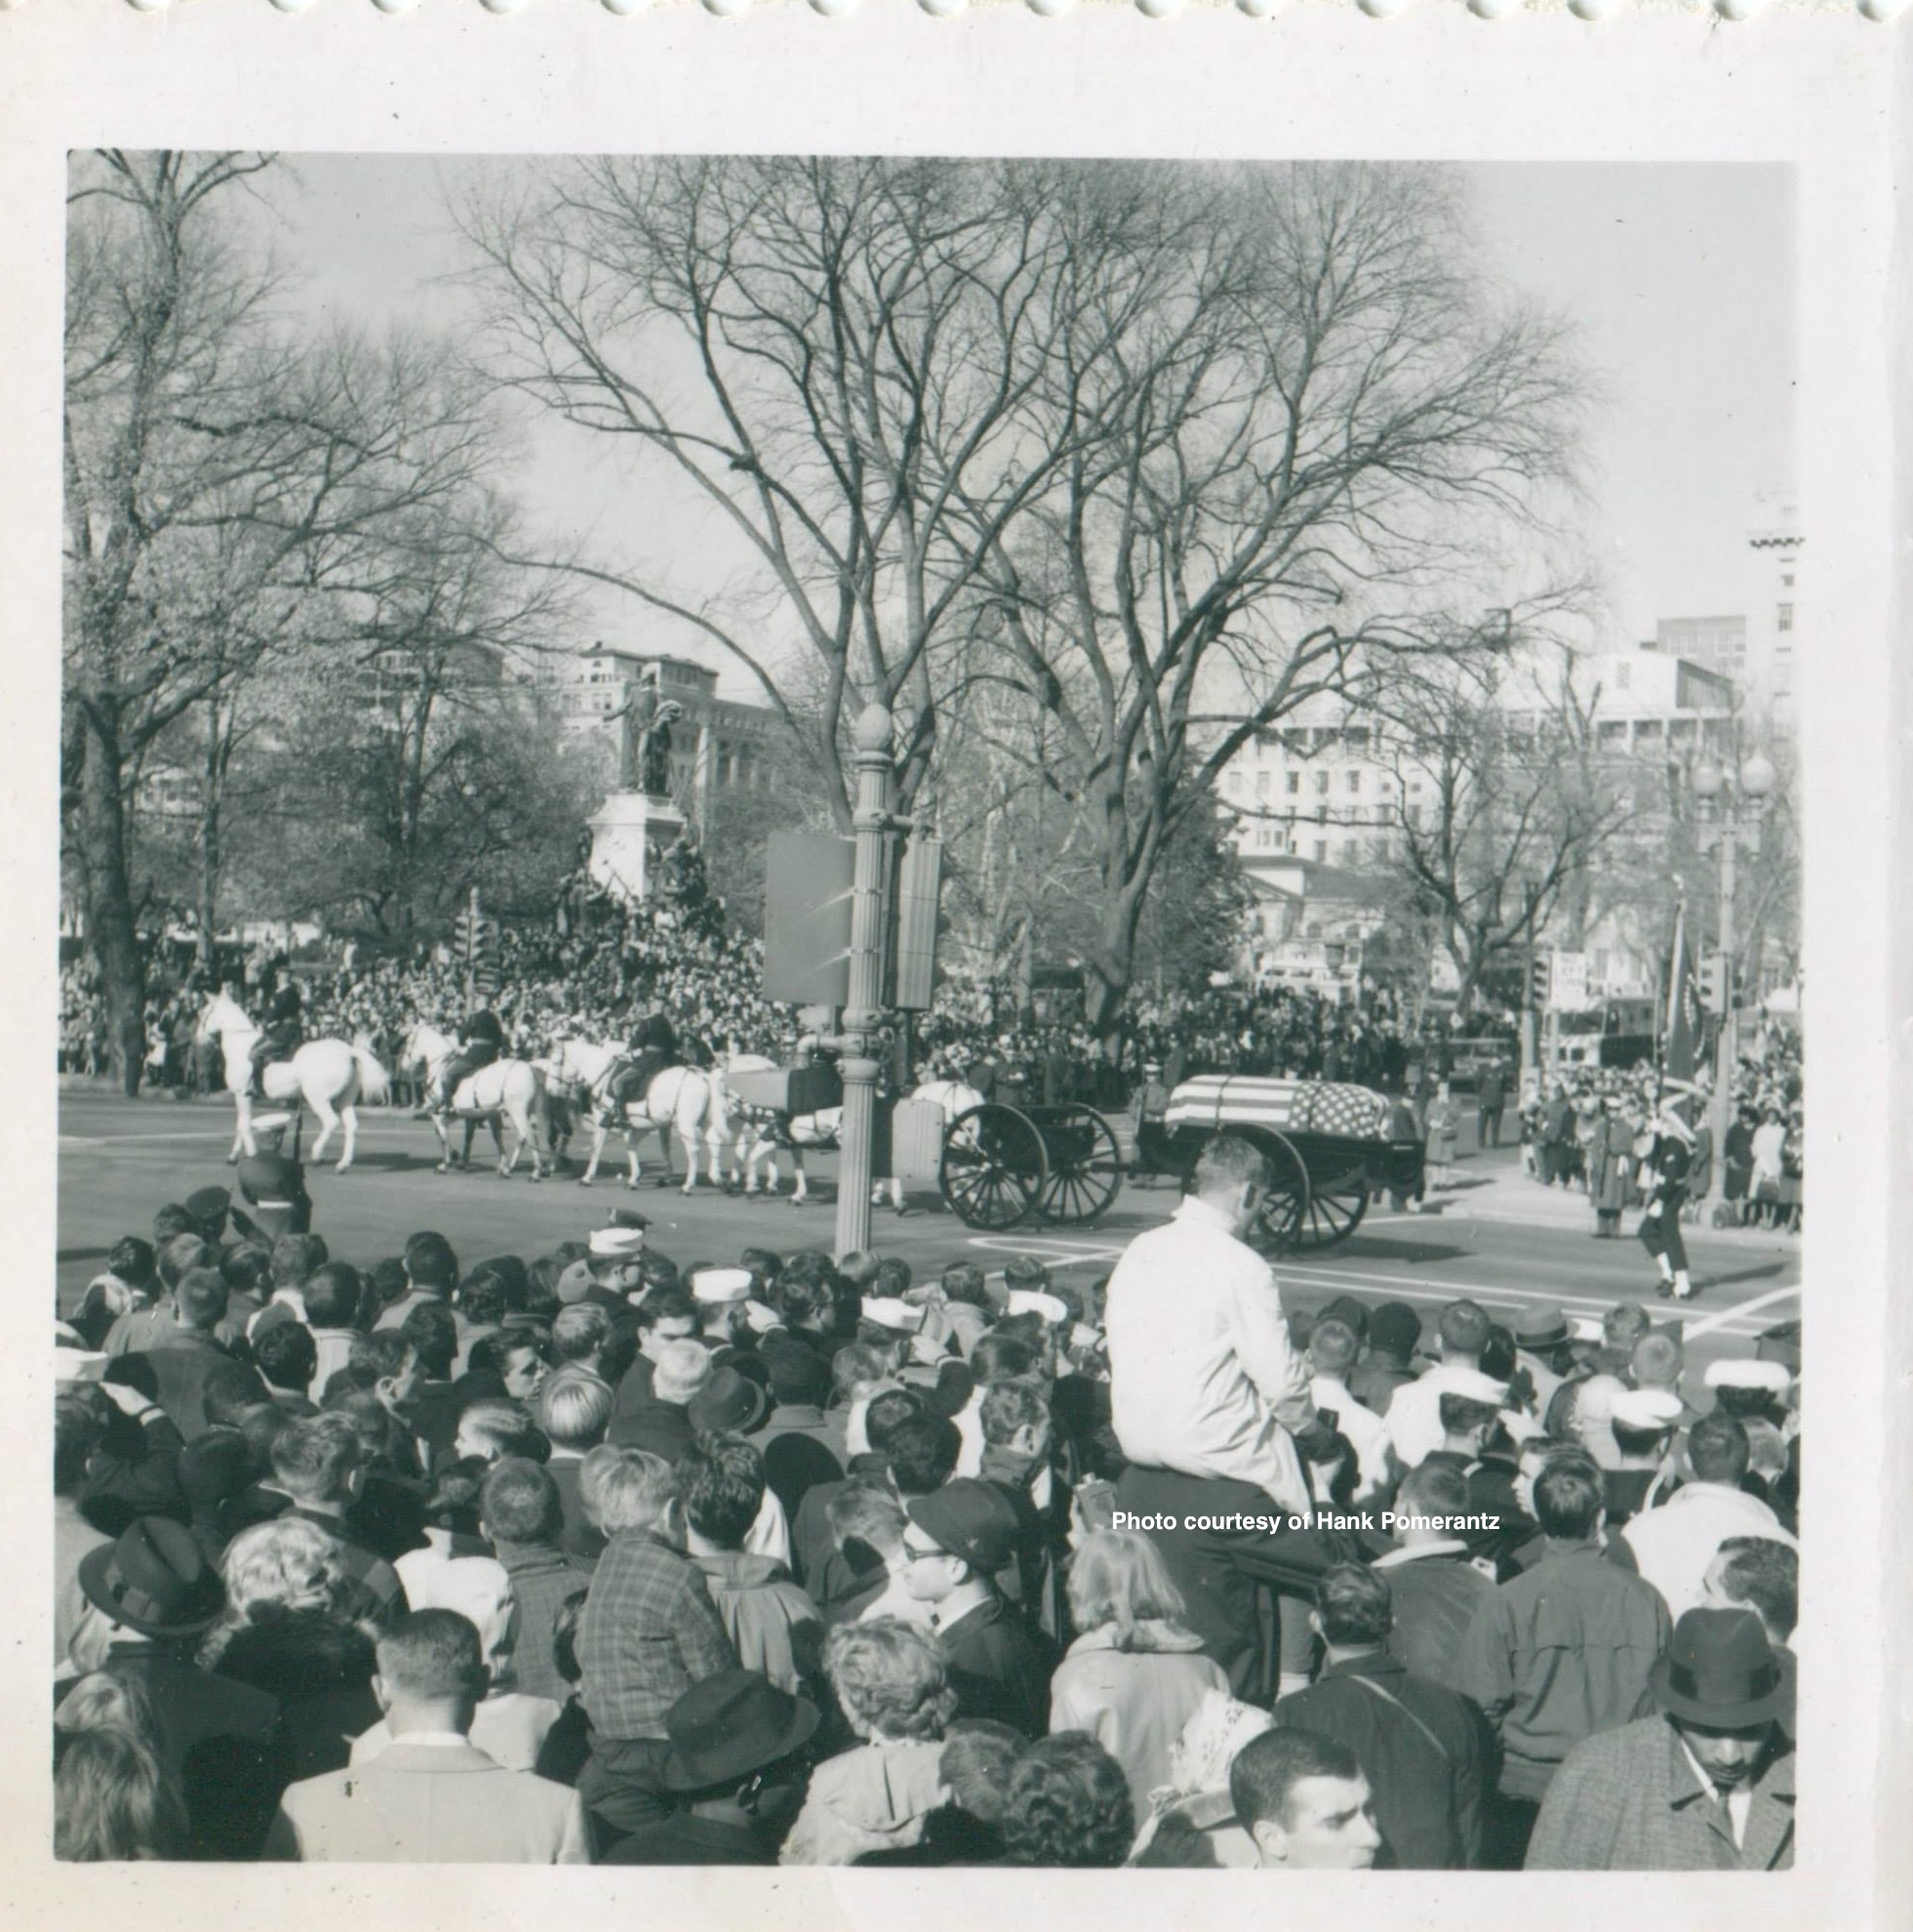 The crowd watches as JFK's casket is taken to the cemetery. Photo by and courtesy of Hank Pomerantz.